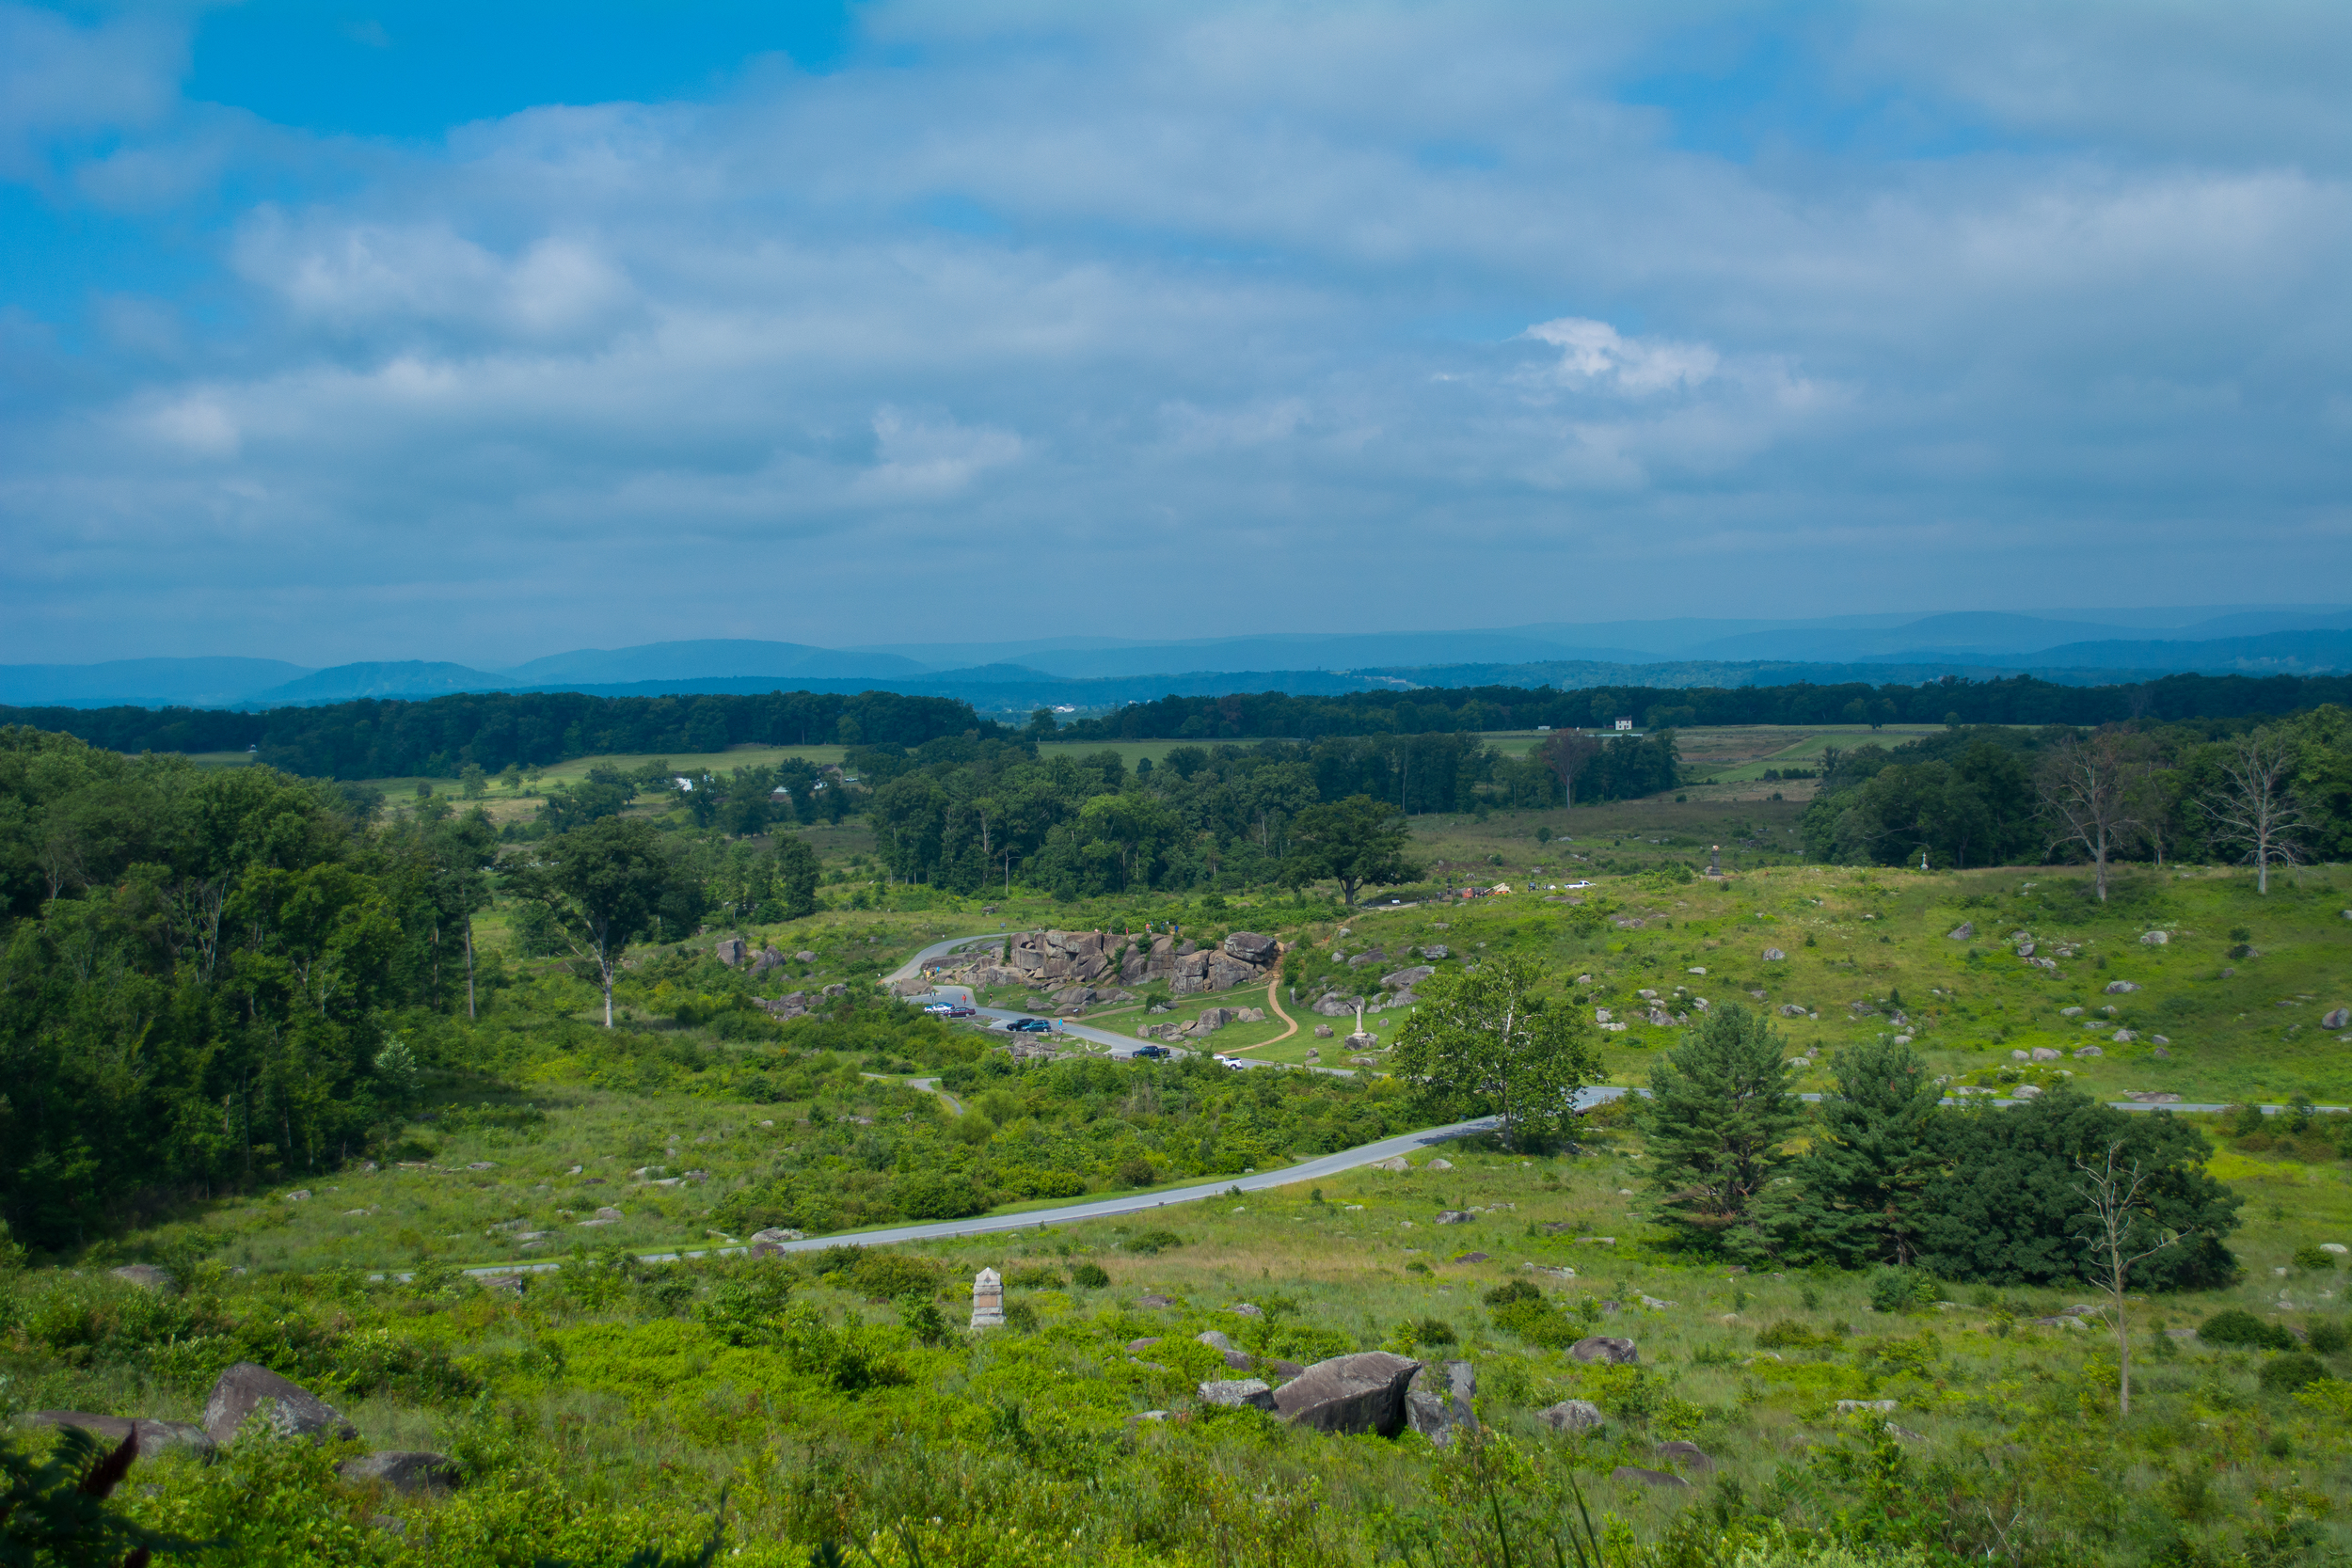 View of Devils Den from Little Round Top